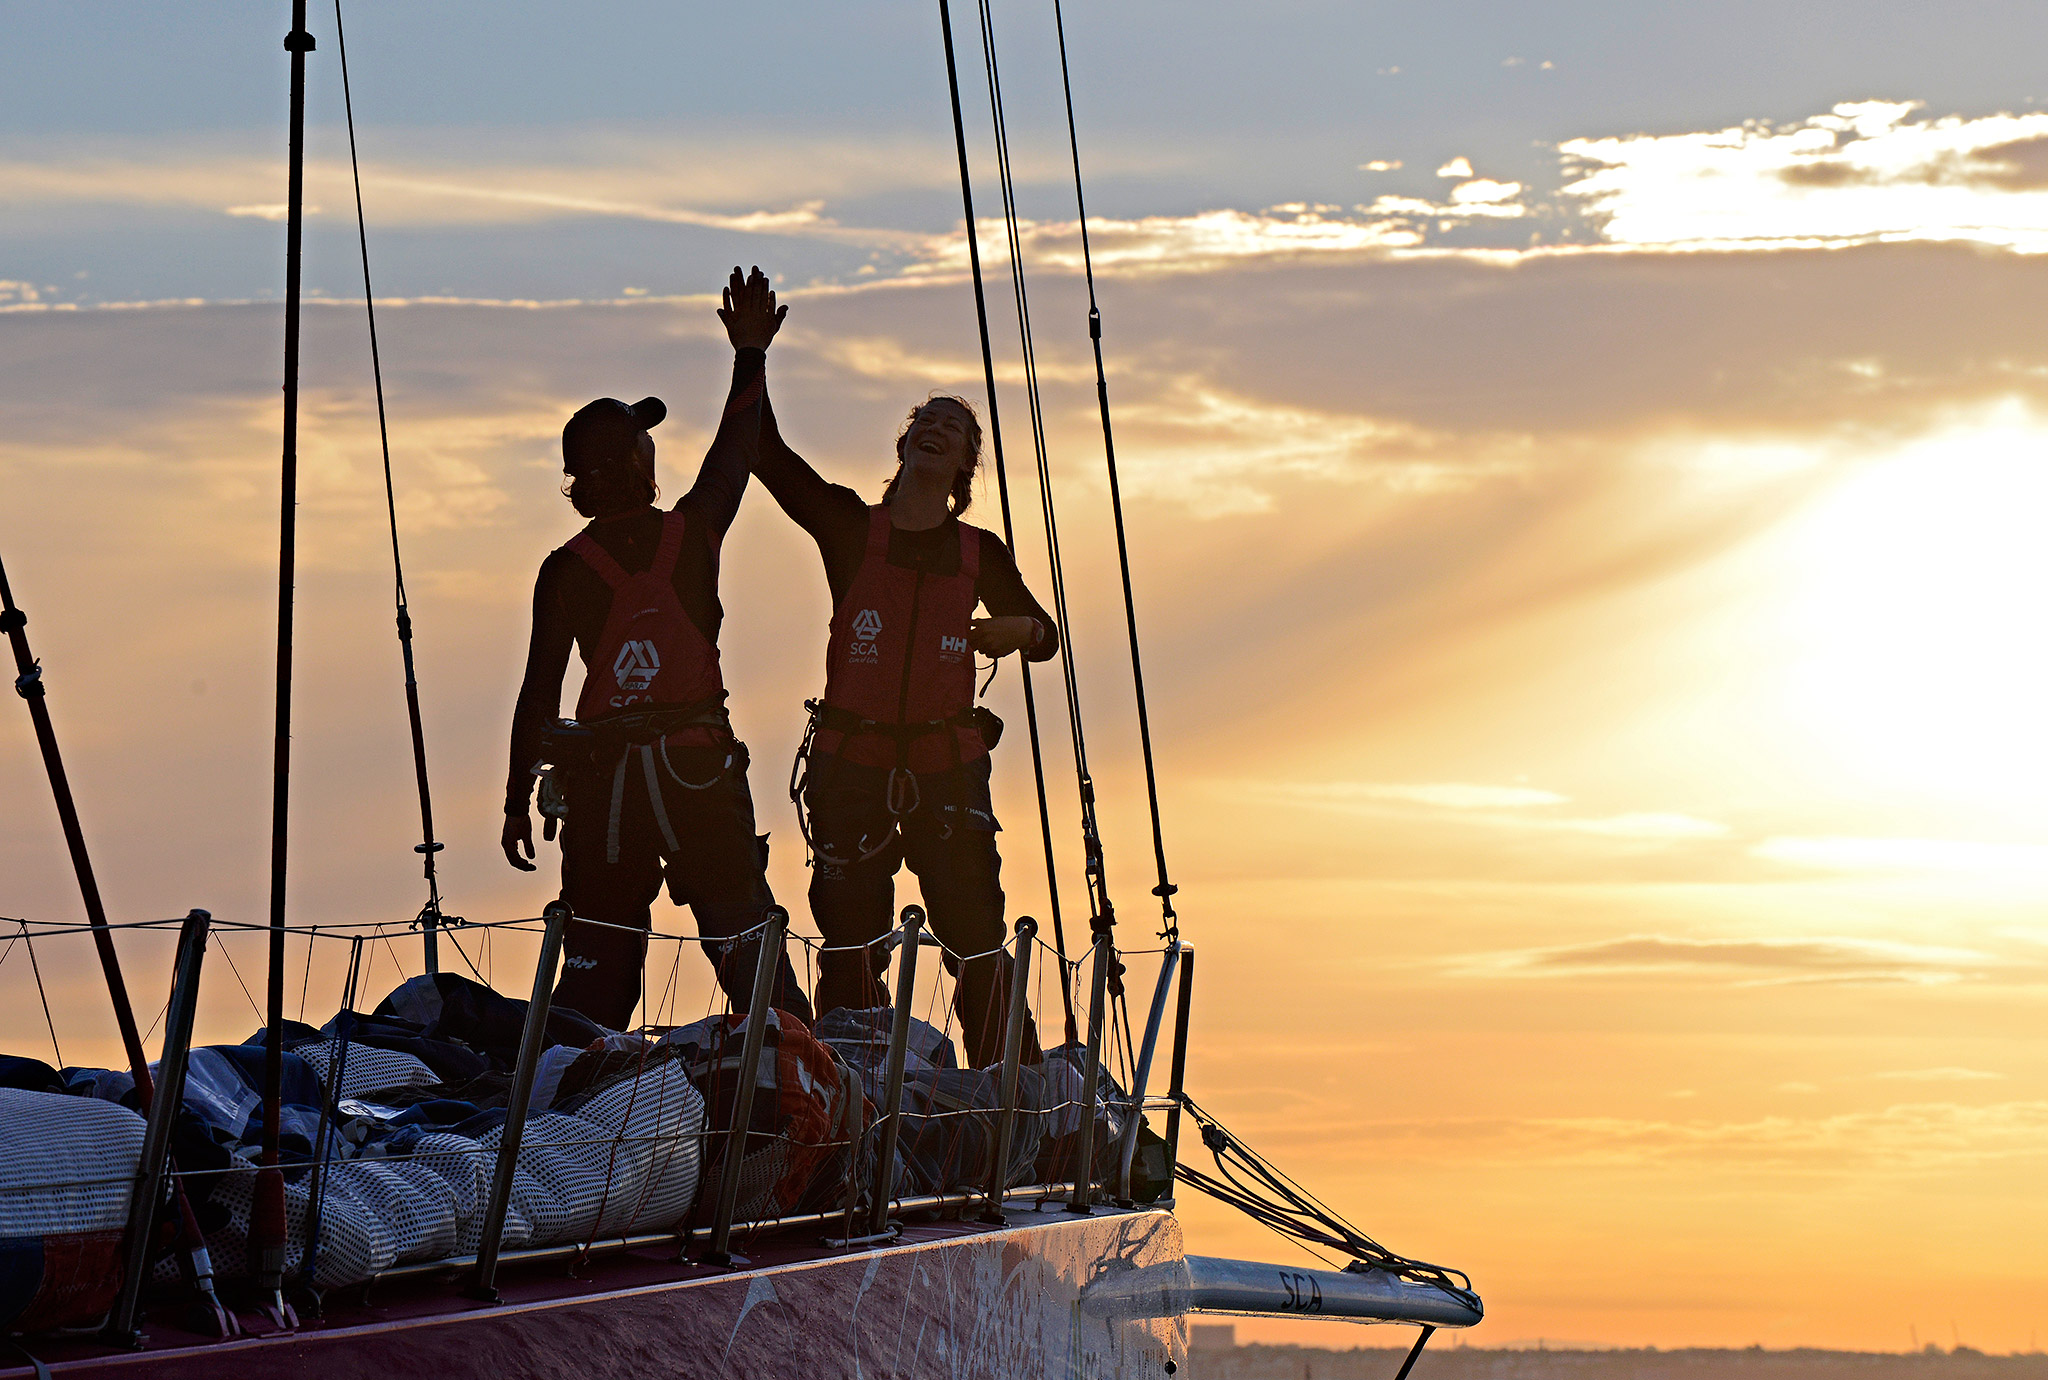 Bowman Sara Hastreiter, United States, and Sophie Ciszek, Australia, high five as Team SCA's Volvo Ocean 65 skippered by Sam Davies finishes at dawn, beating the all-female round Britain record during the Sevenstar Round Britain and Ireland Race.